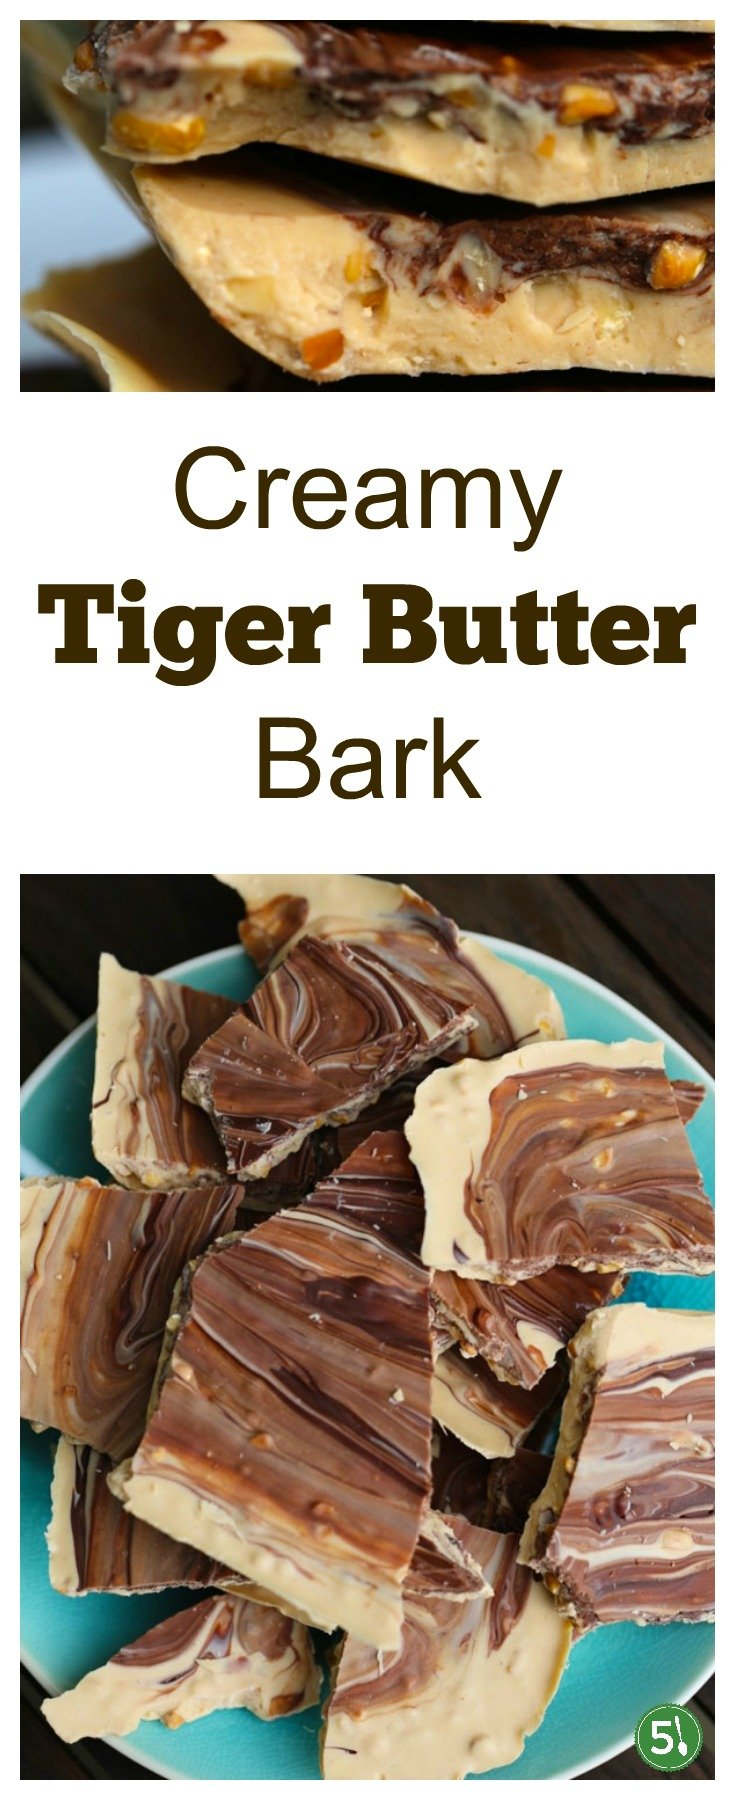 Tiger Butter Bark recipe with white chocolate, chunky peanut butter, and swirls of semi sweet chocolate.  This candy is perfect for the Christmas party desserts table.  Yum.